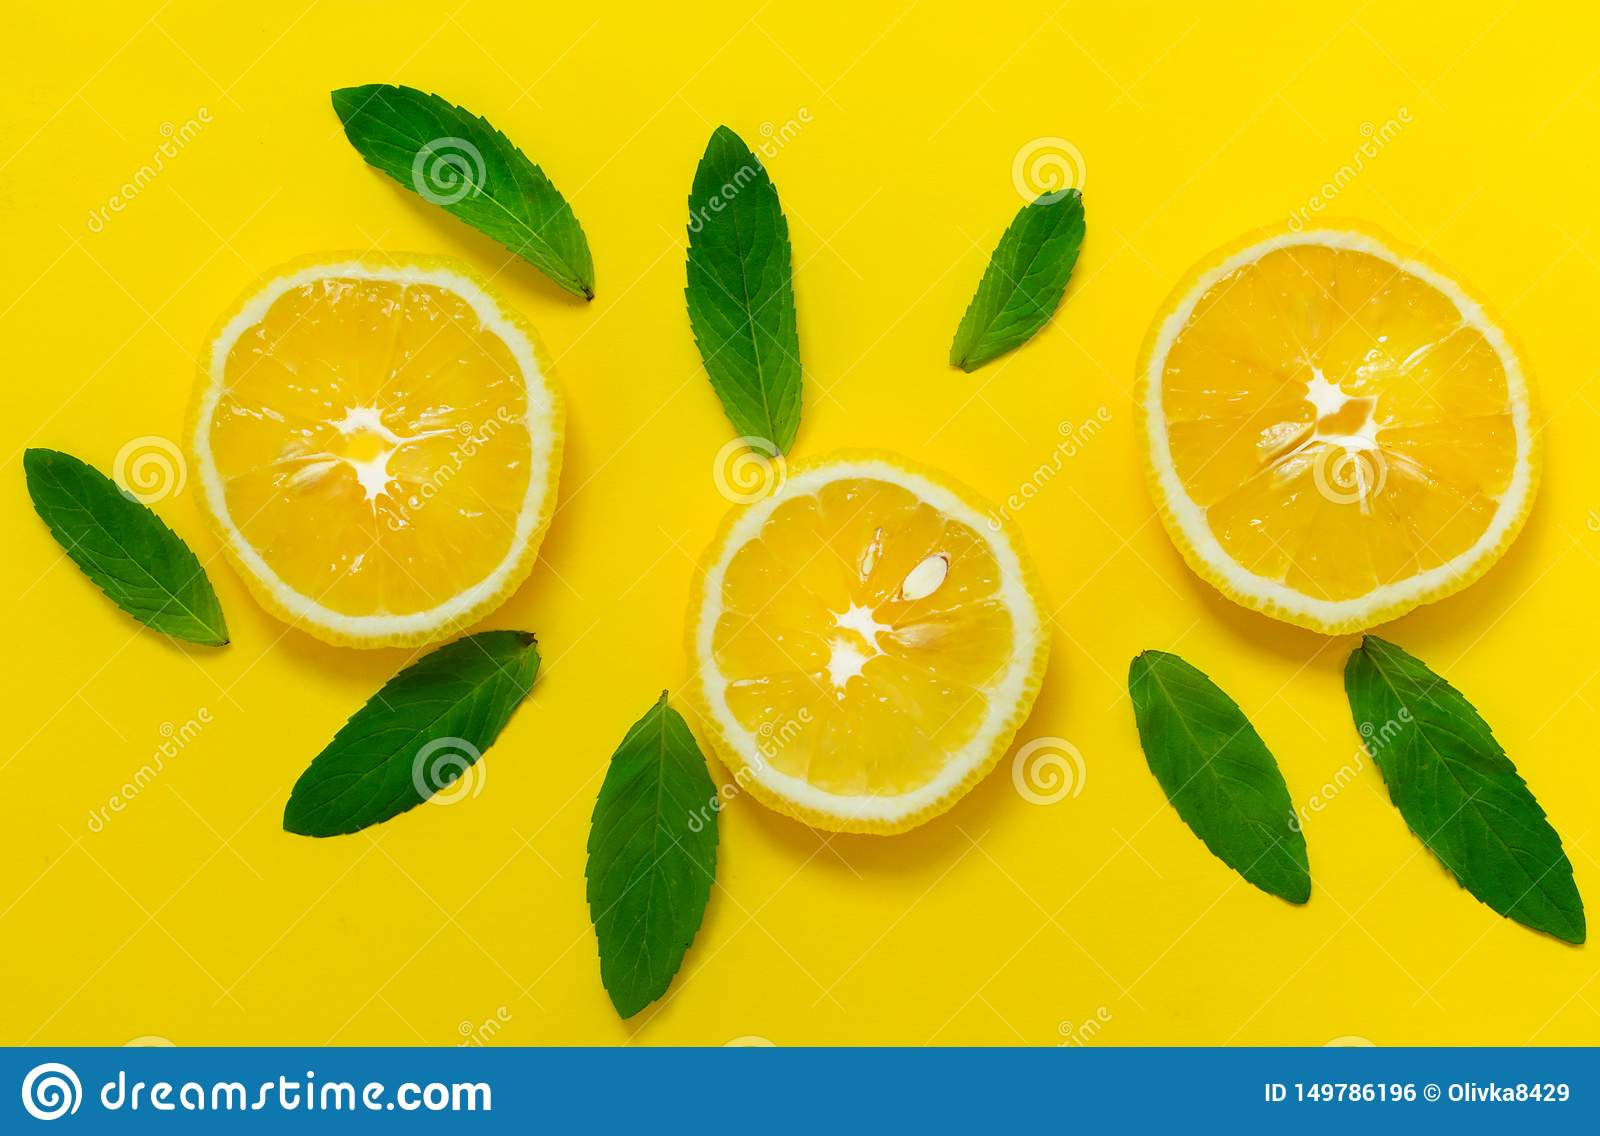 Sliced ​​lemon and mint leaves on a bright yellow background. Background for the design of banners, websites.